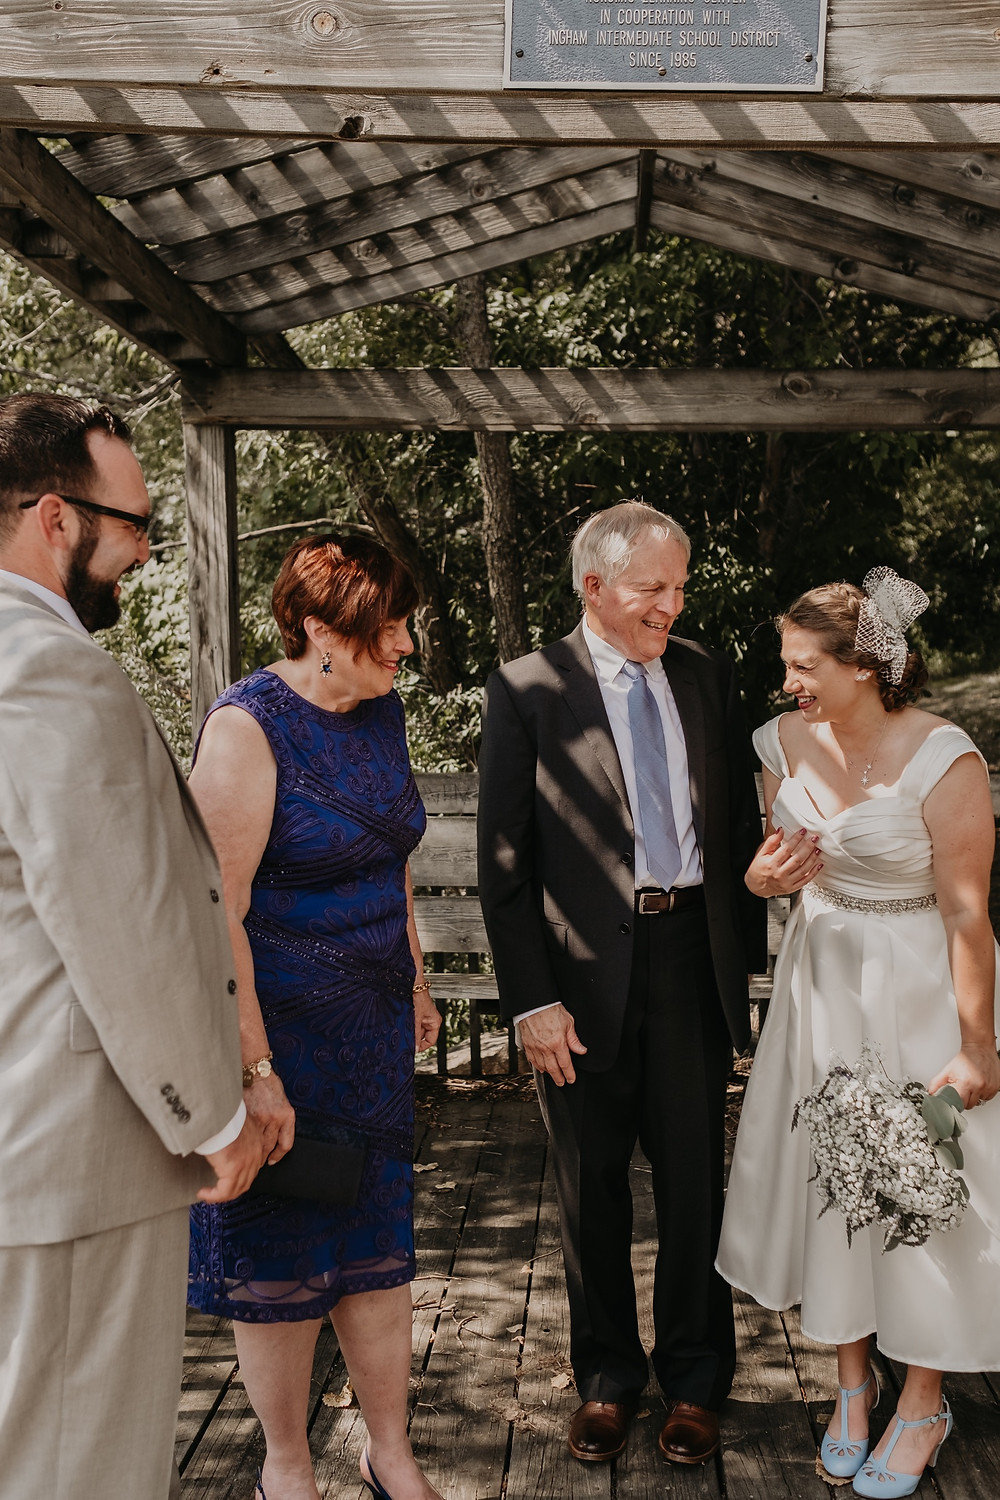 Bride and groom greeting guests after wedding ceremony. Photographed by Nicole Leanne Photography.